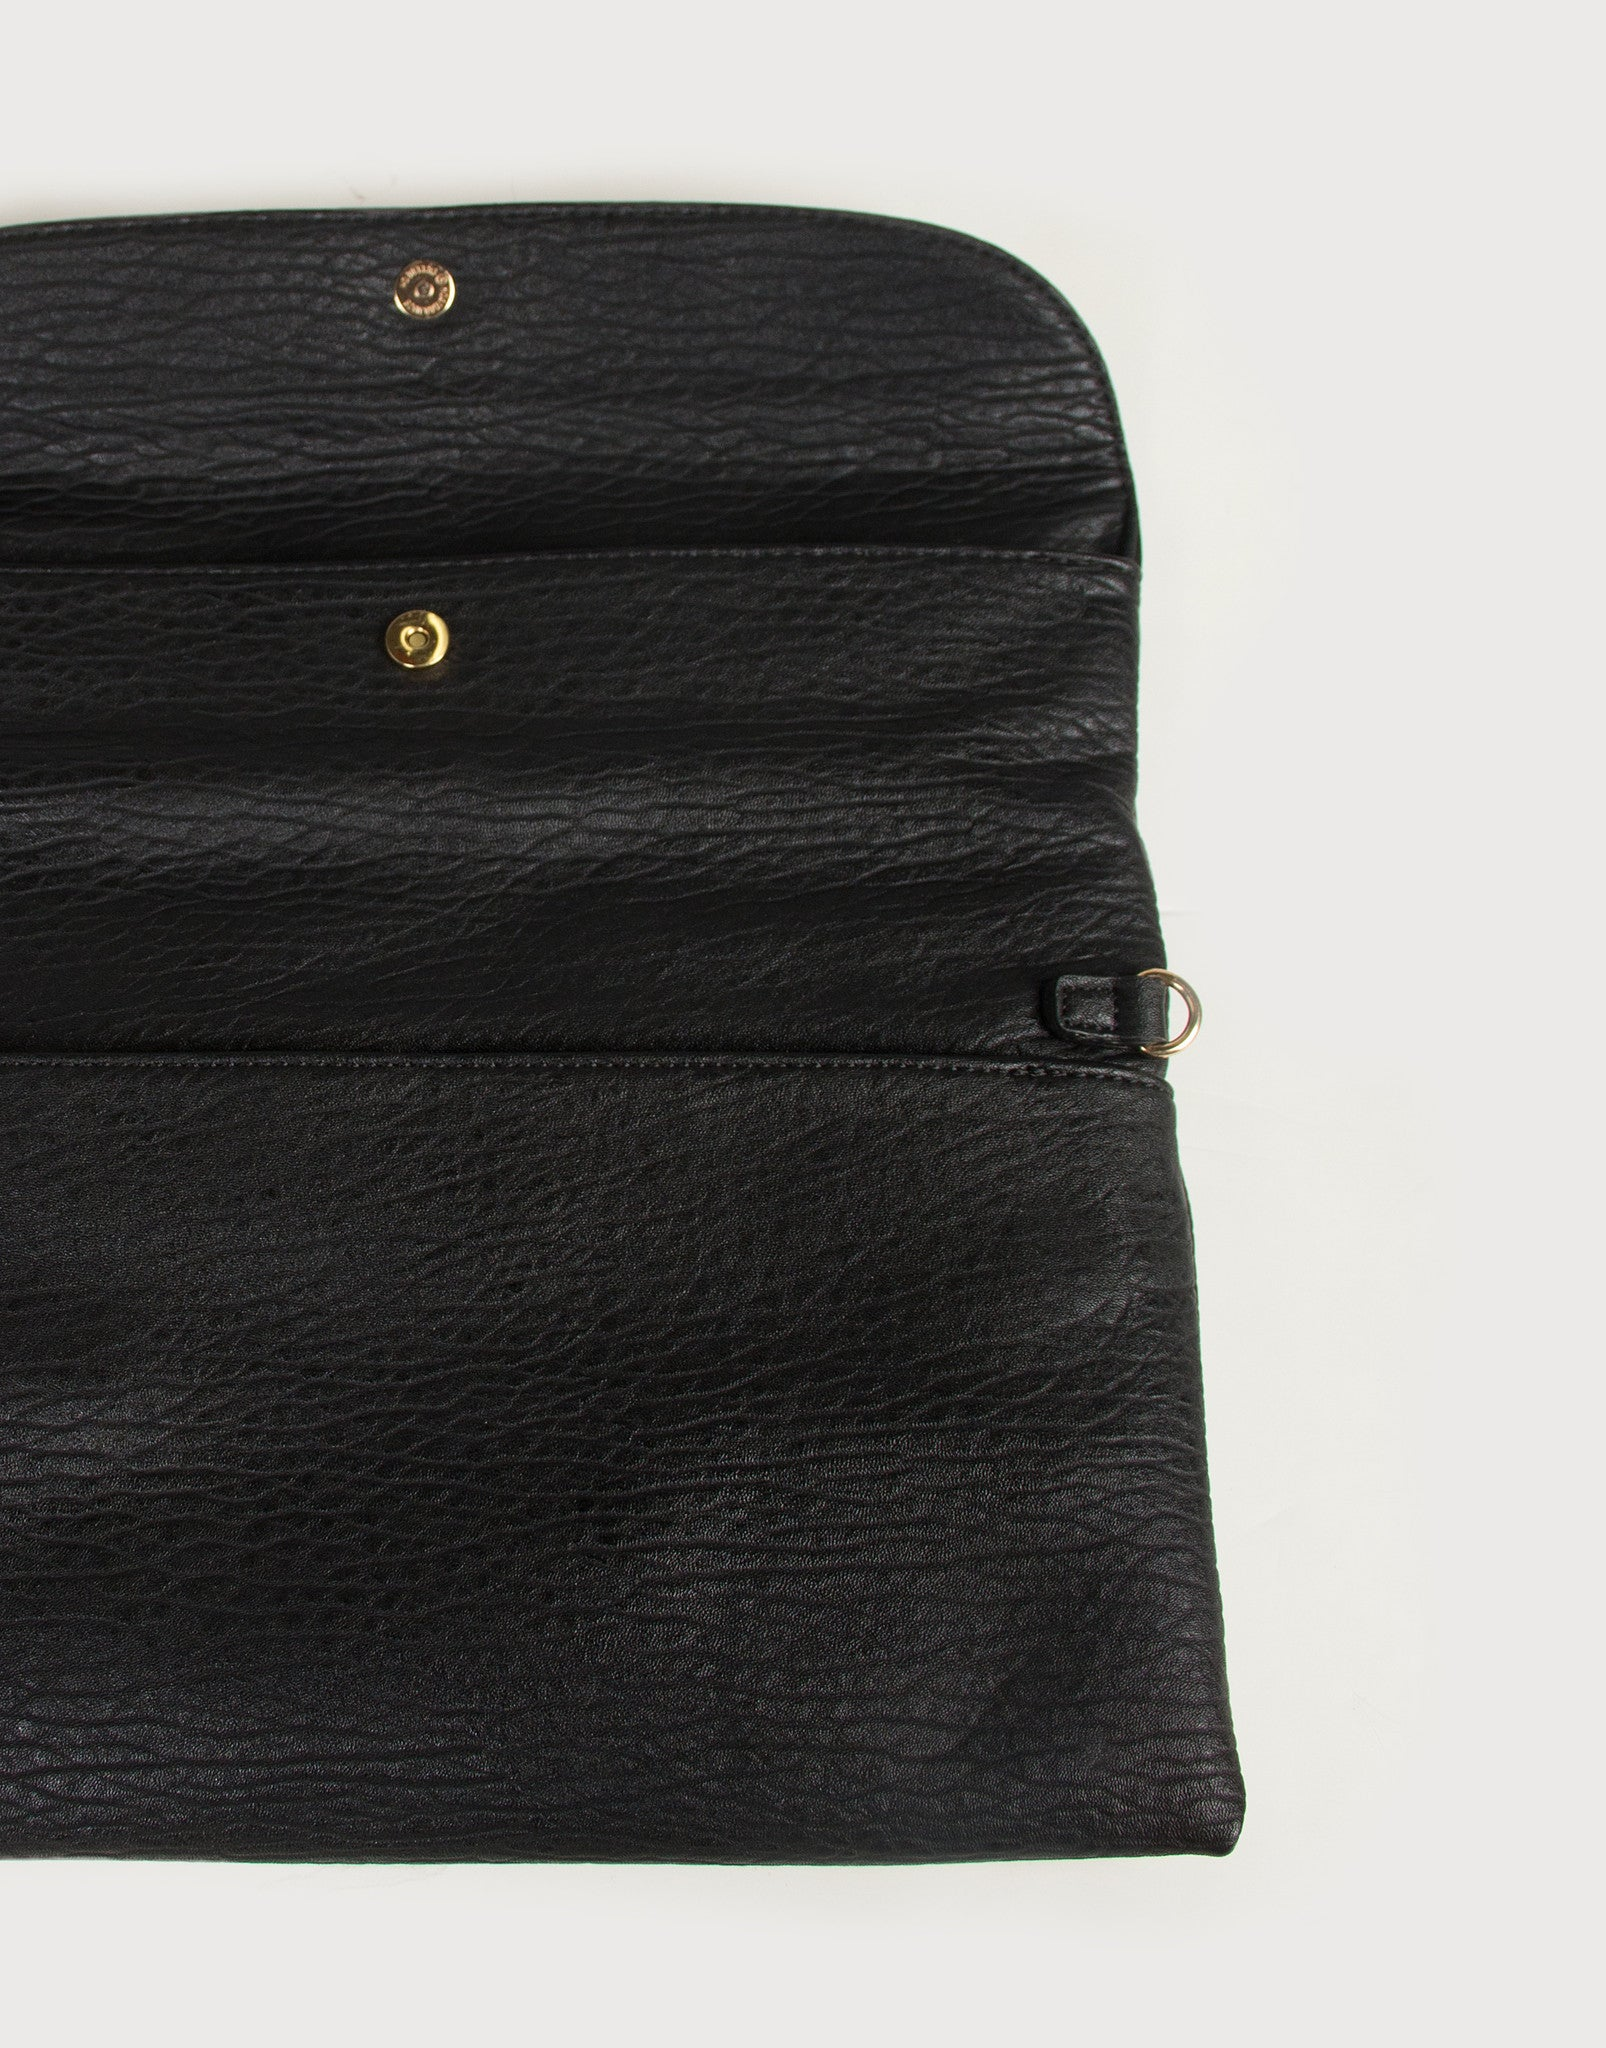 Foldover Envelope Leather Clutch - Black - 2020AVE